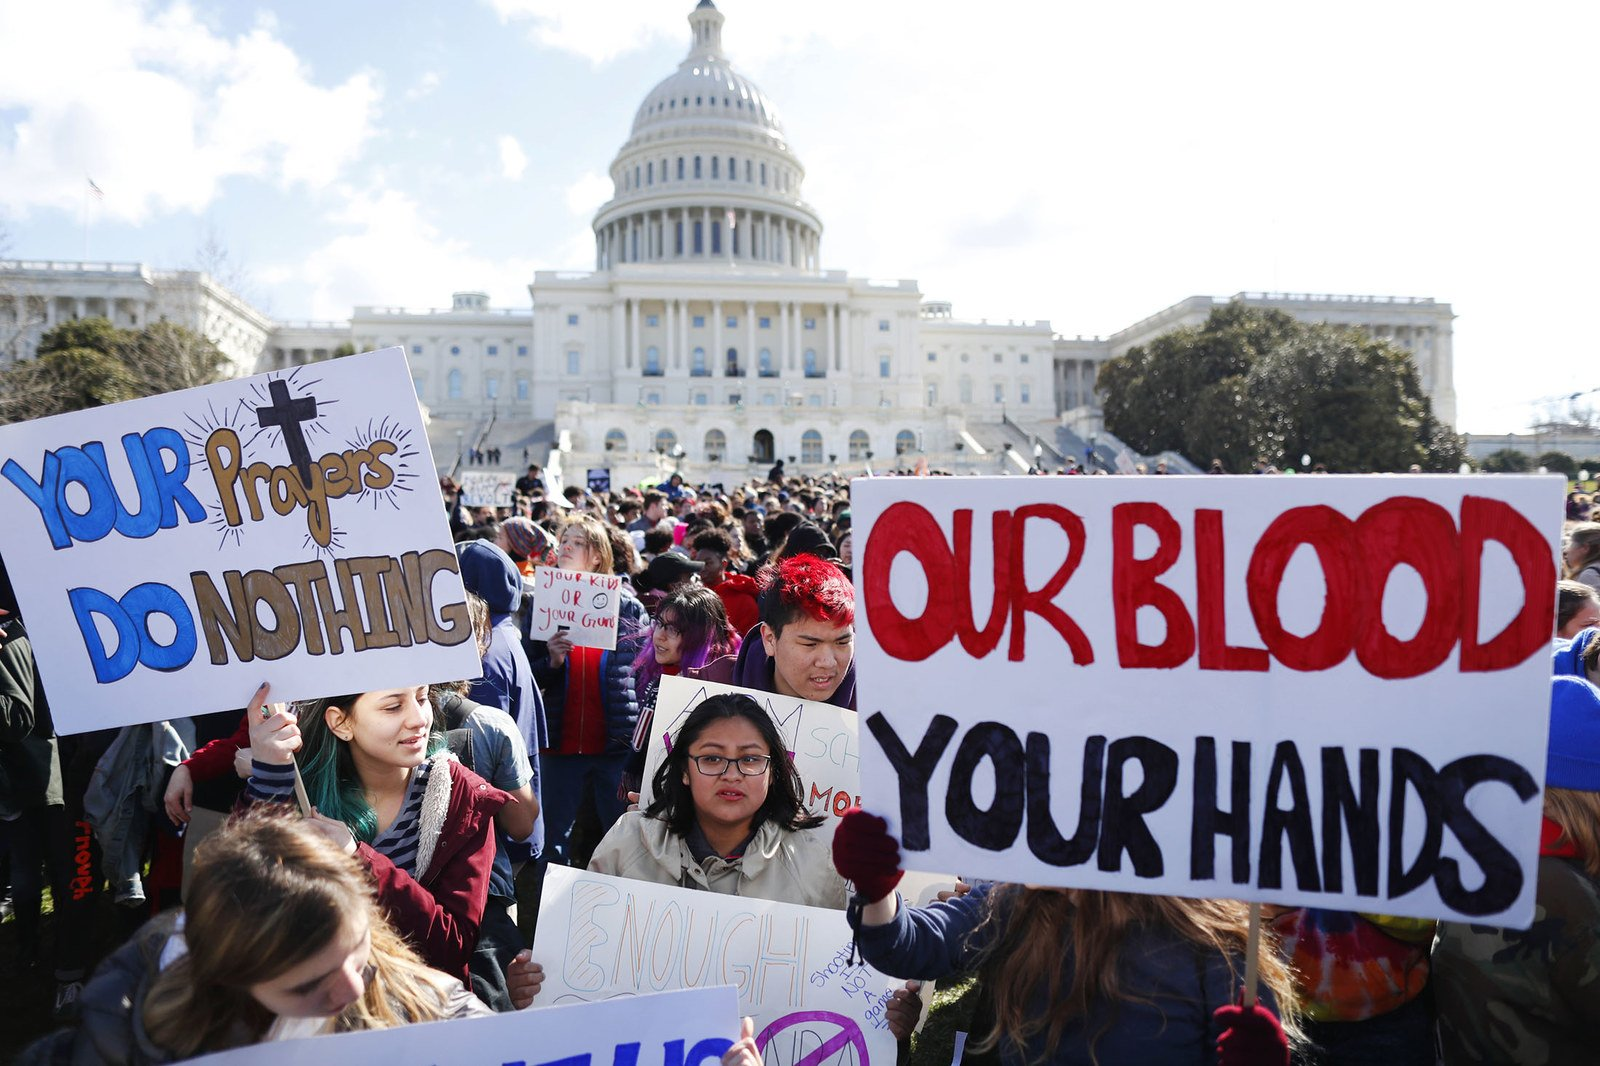 These are the most powerful photos from the student walkouts https://t.co/SEO63ni1CU #NationalWalkoutDay https://t.co/S0s0O7HMnr